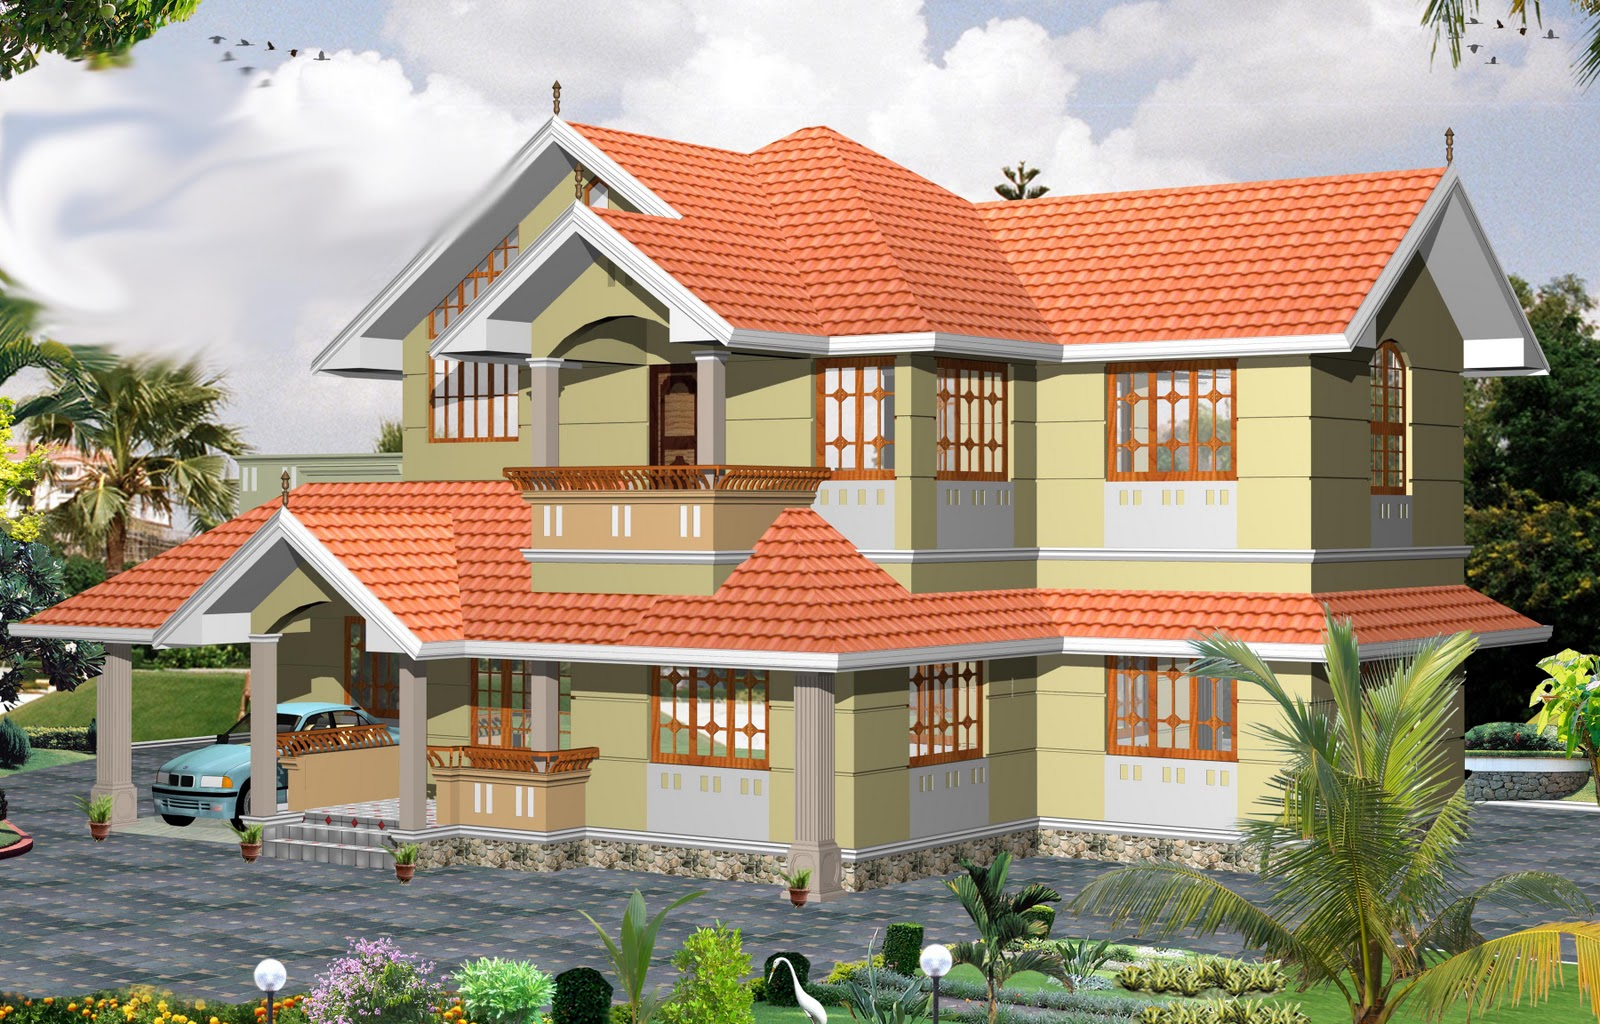 Kerala building construction 2000 sqft 3bhk house plan kerala home floor plans with photo New build house designs